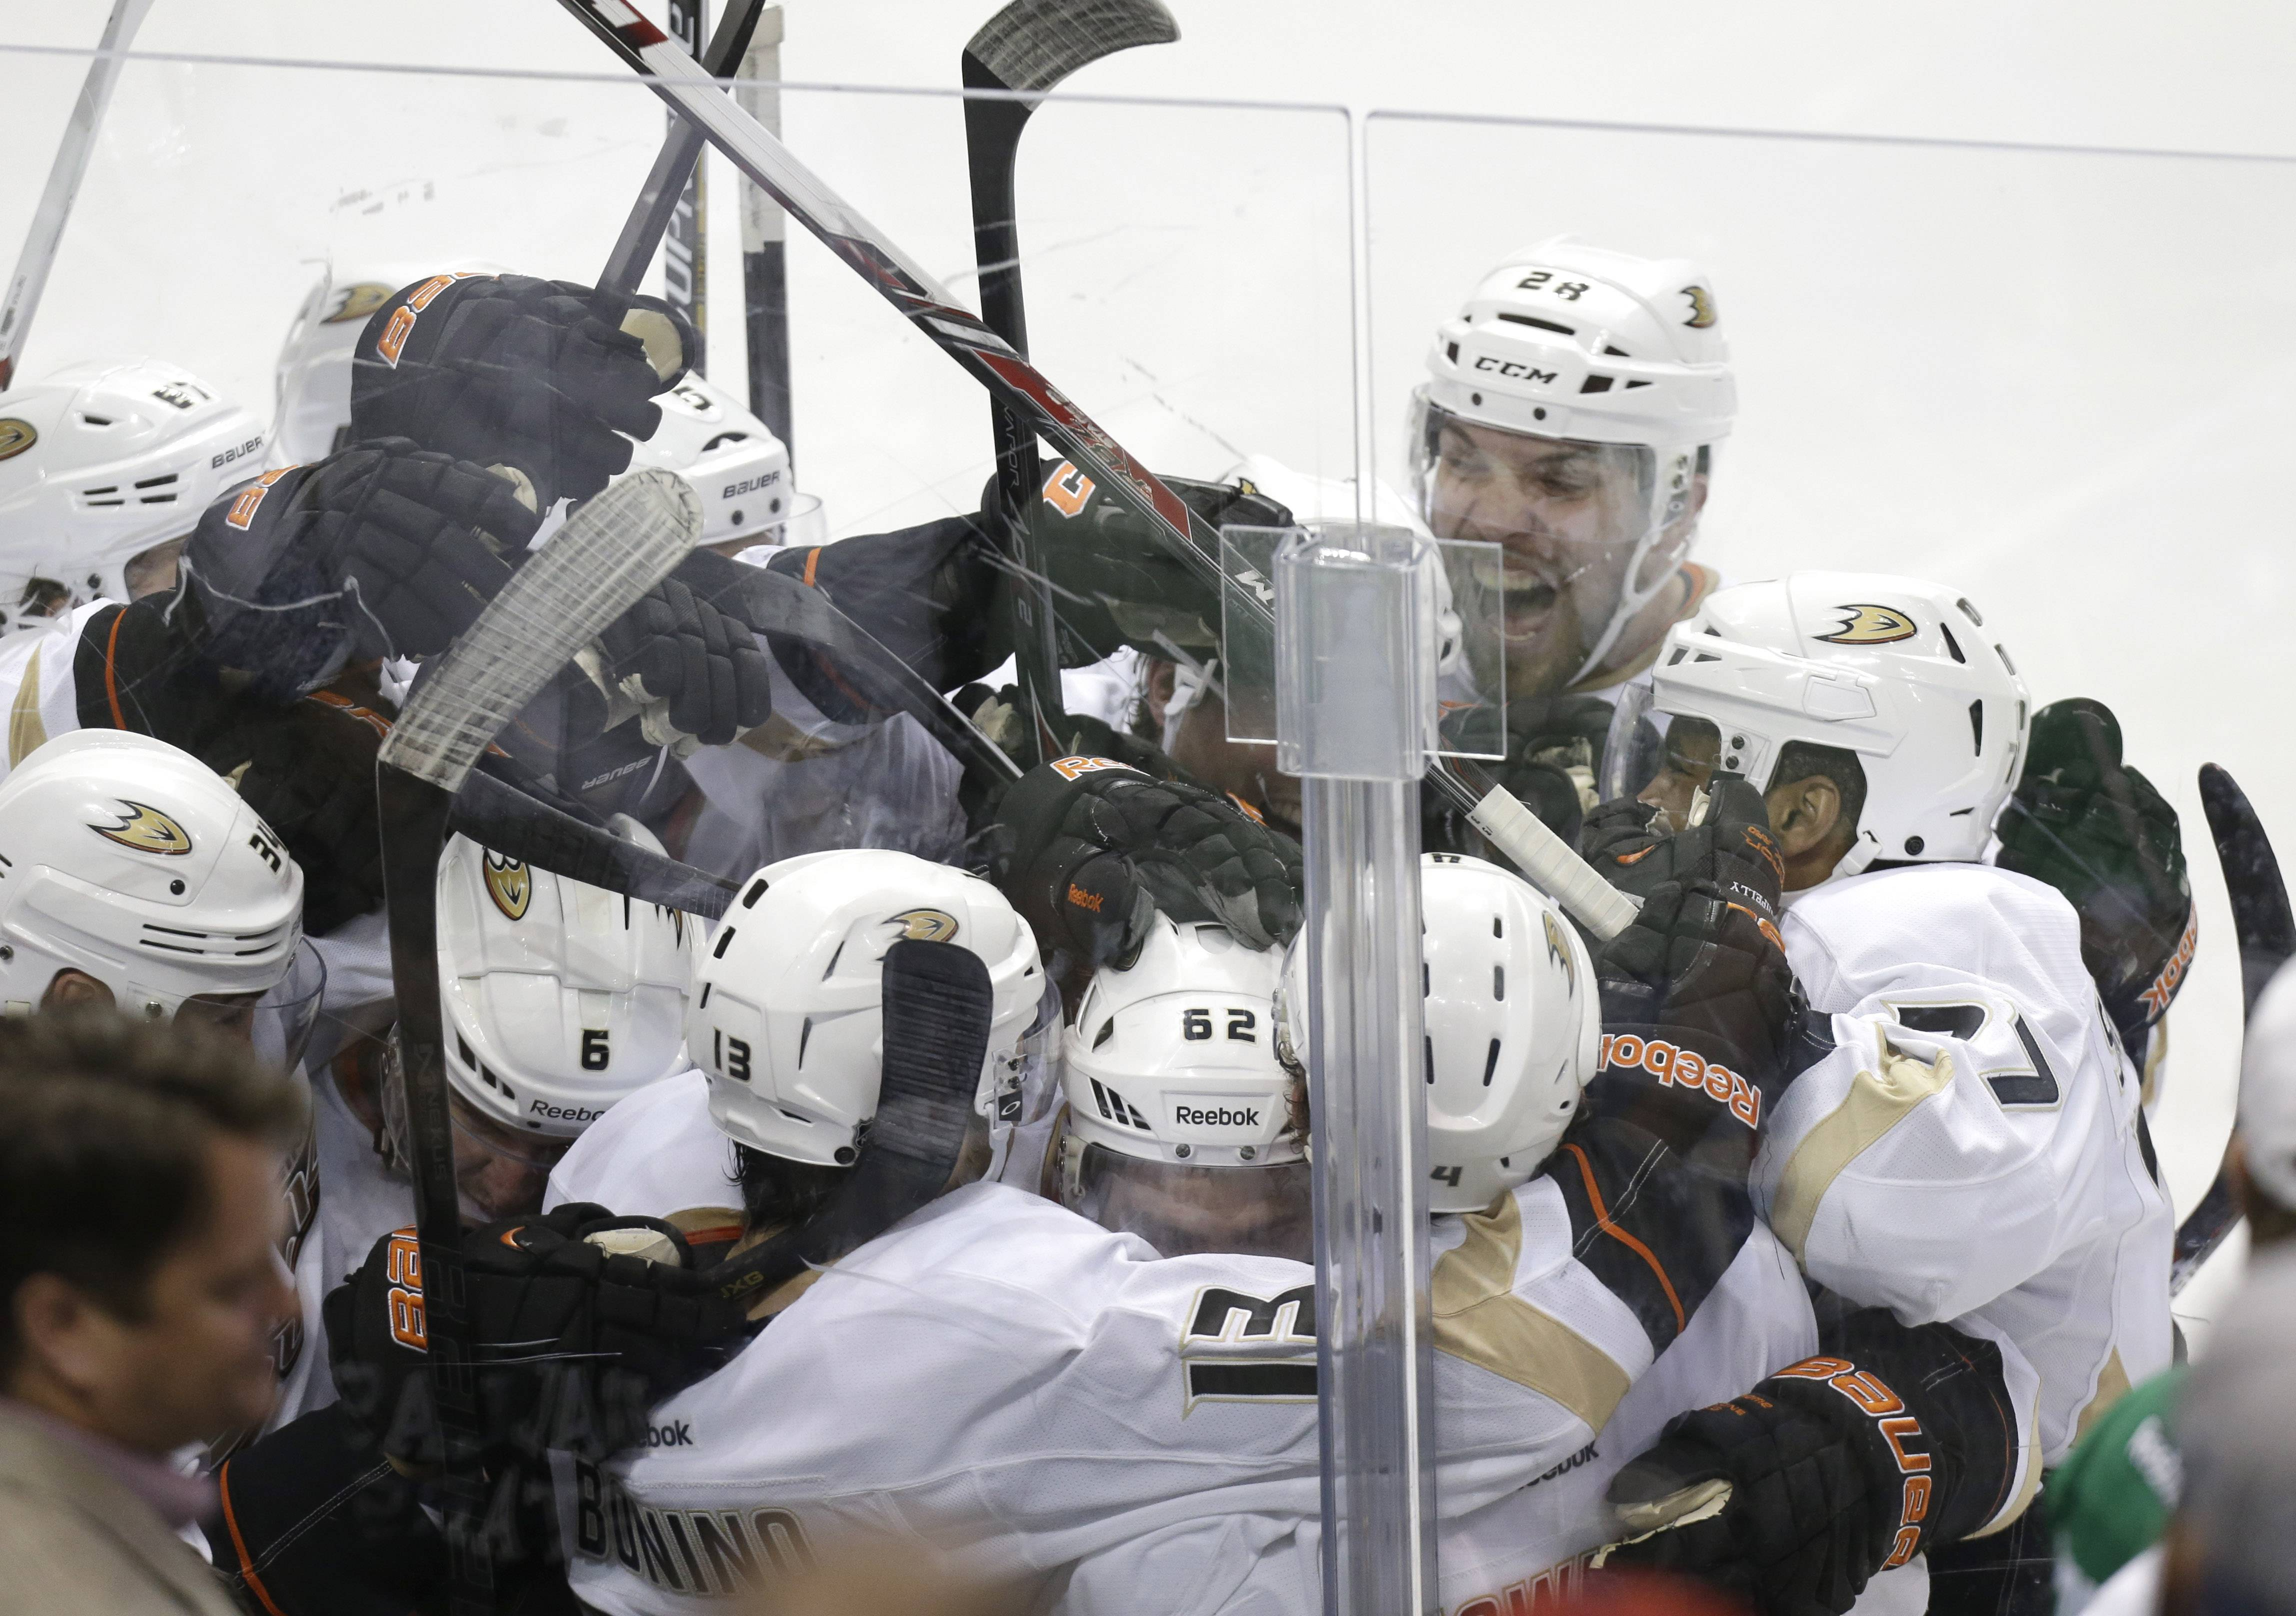 Anaheim Ducks Nick Bonino (13) is mobbed by his teammates after he scored the game winning goal in overtime of Game 6 to win the first-round NHL hockey playoff series against the Dallas Stars in Dallas, Sunday, April 27, 2014. The final score 5-4 for the Ducks.